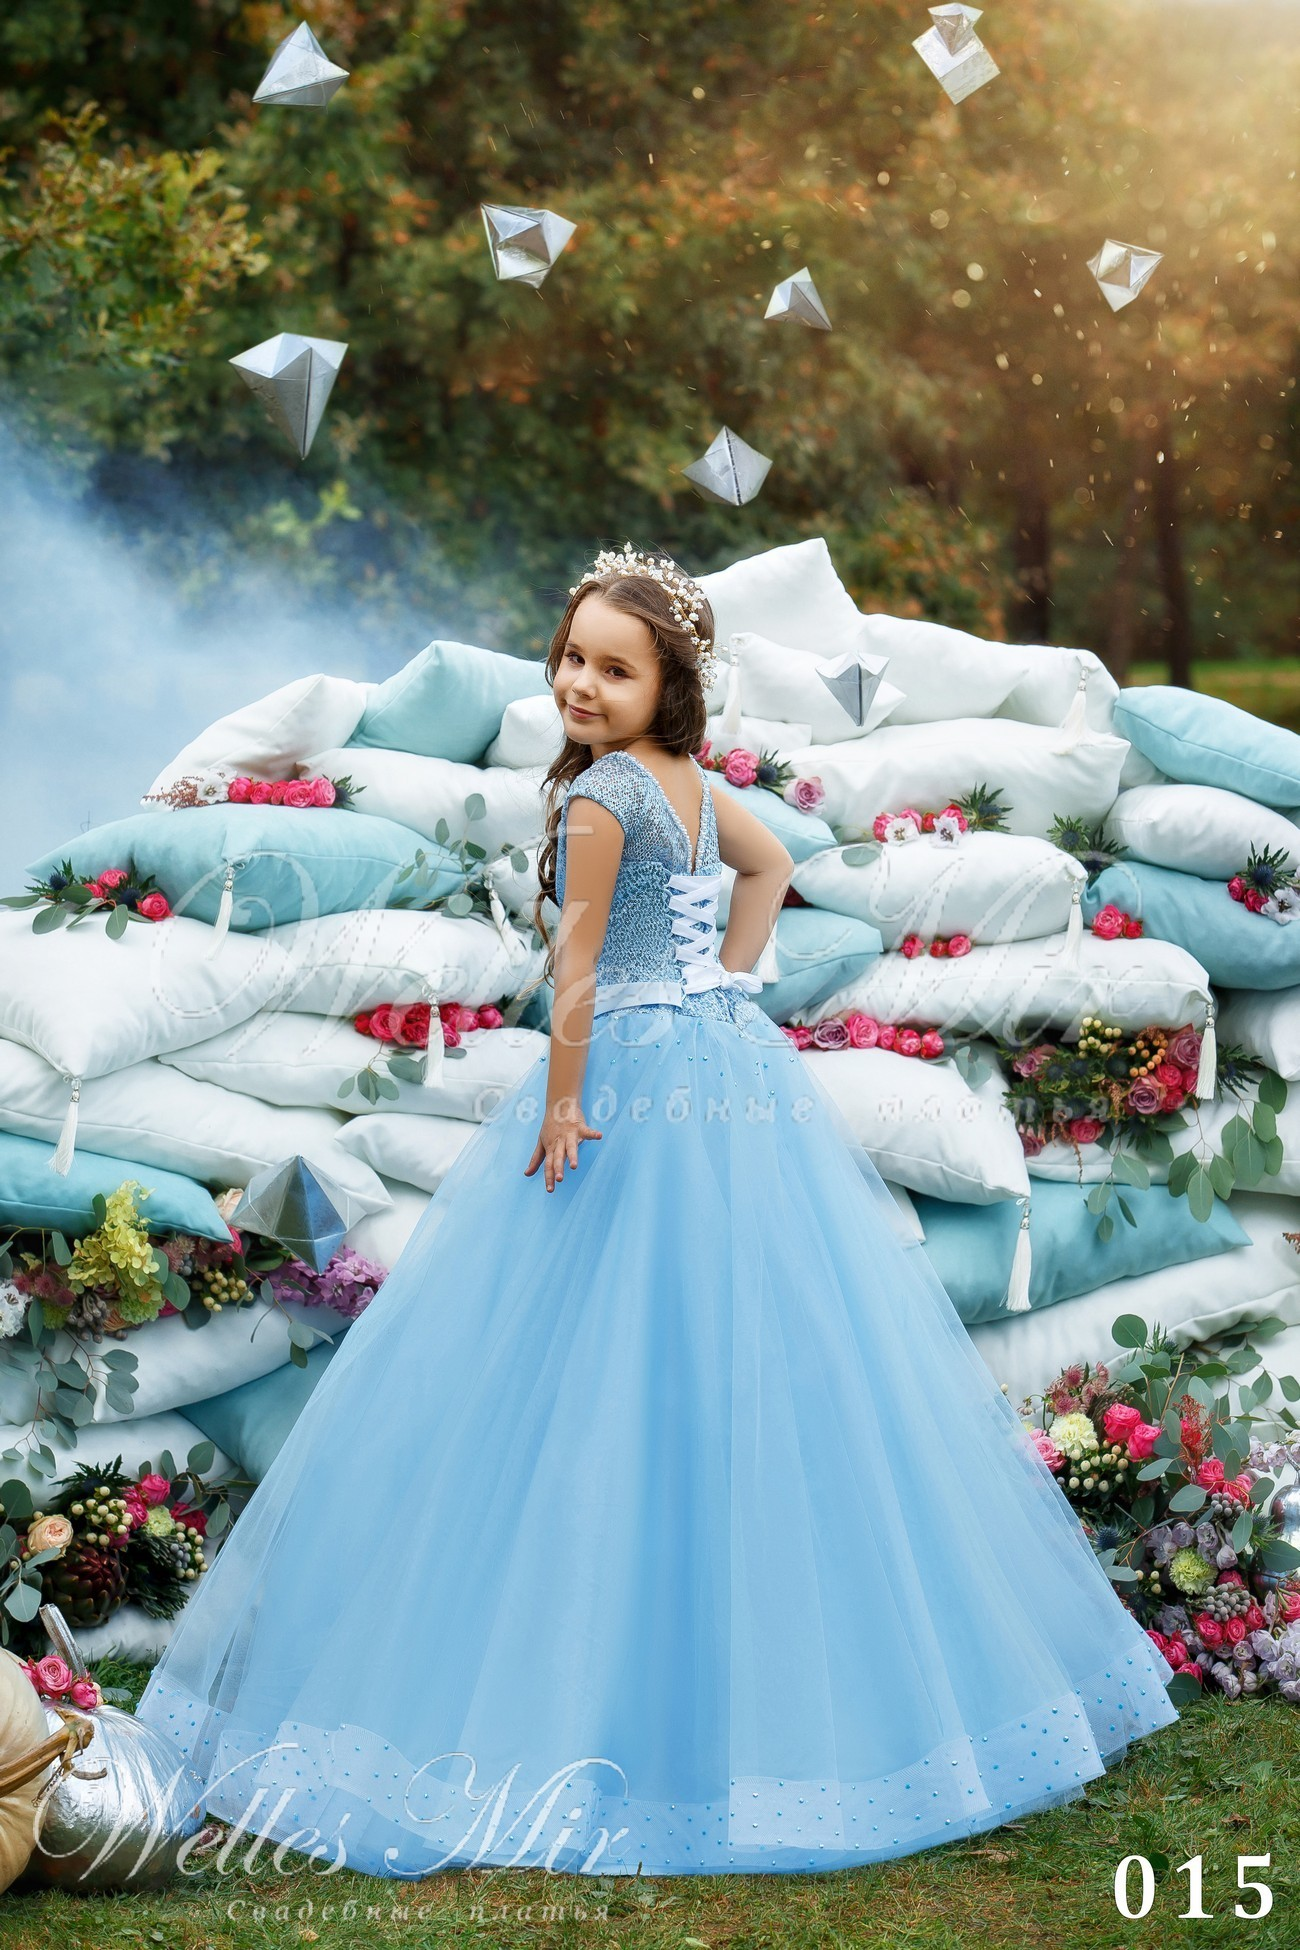 Kids Deluxe Collection 2018 - 015